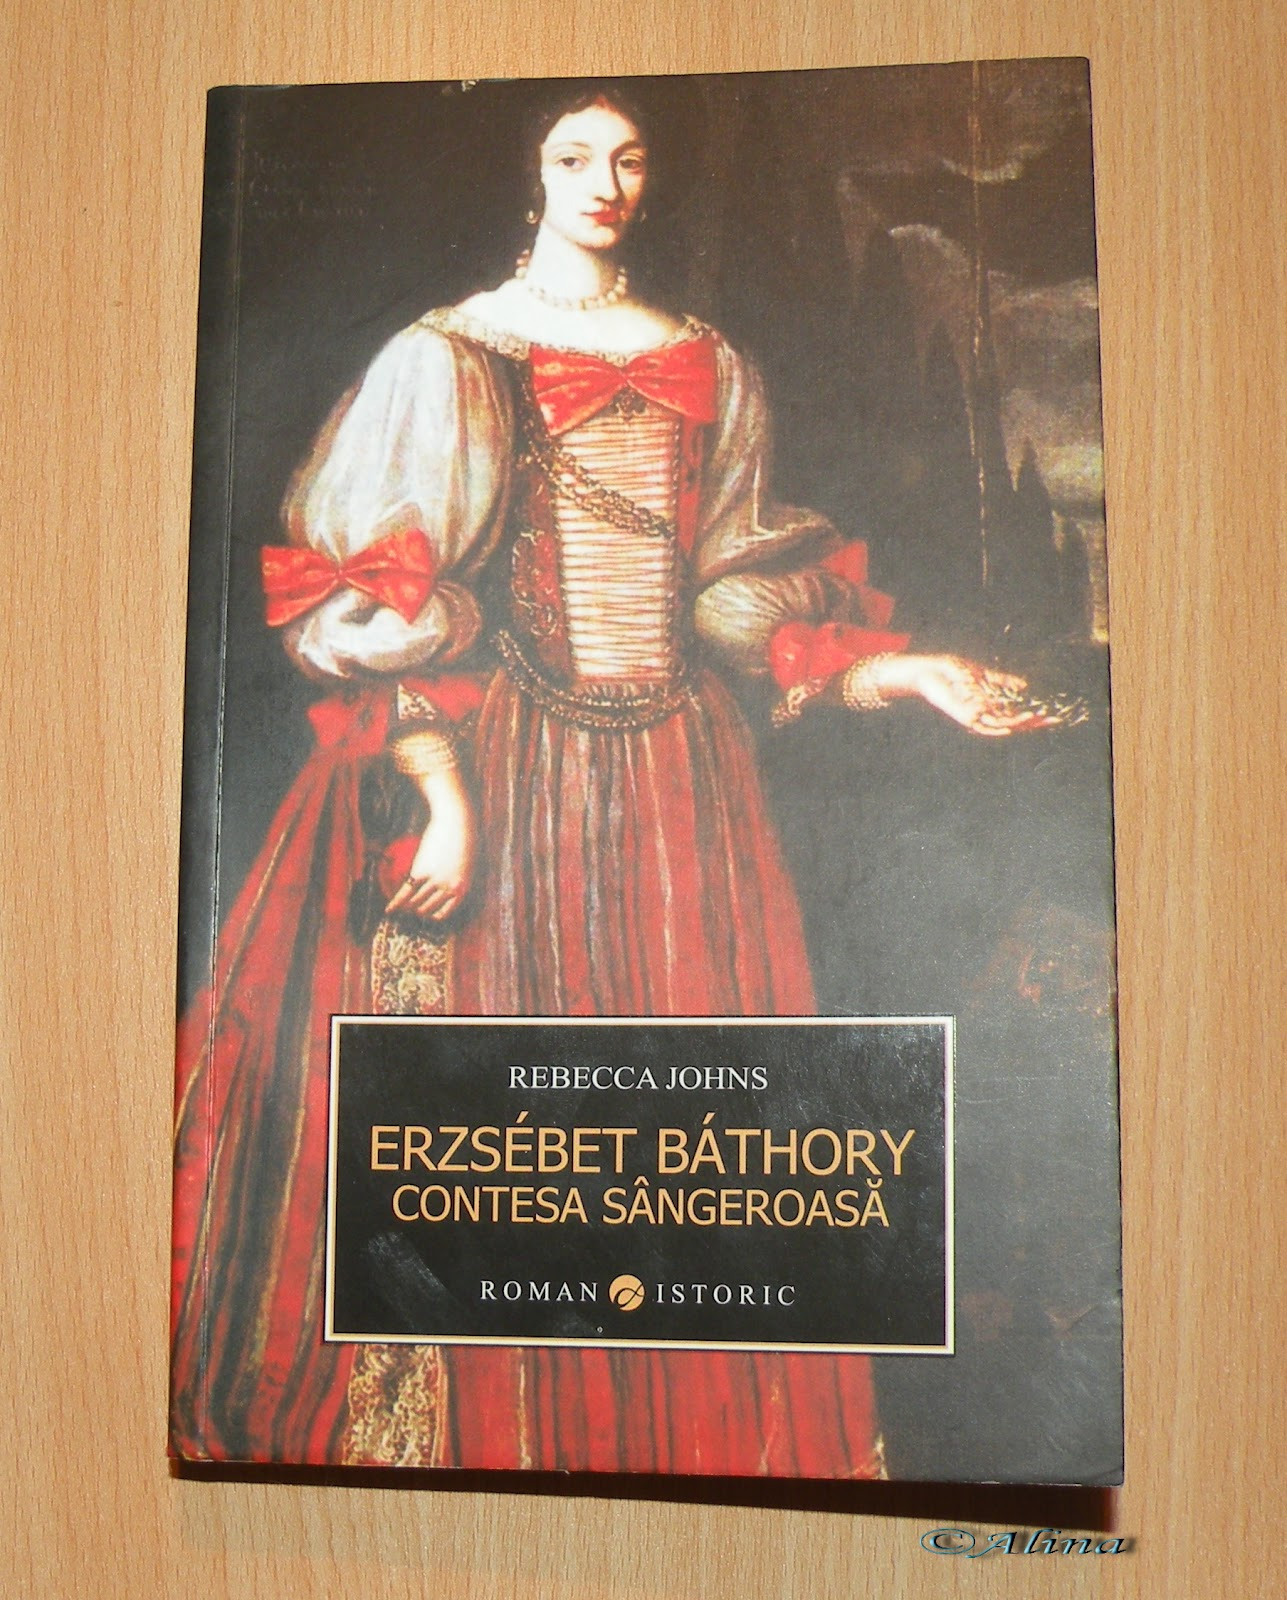 a biography of erzsbet bathory Erzebet bathory (often referred to as elizabeth bathory) was a 16th century hungarian countess famous for her obsession with beauty her crimes were the inspiration for two of the most famous characters in literature, dracula and the evil queen in snow white bathory's boutique offers a unique line of gifts inspired by the.